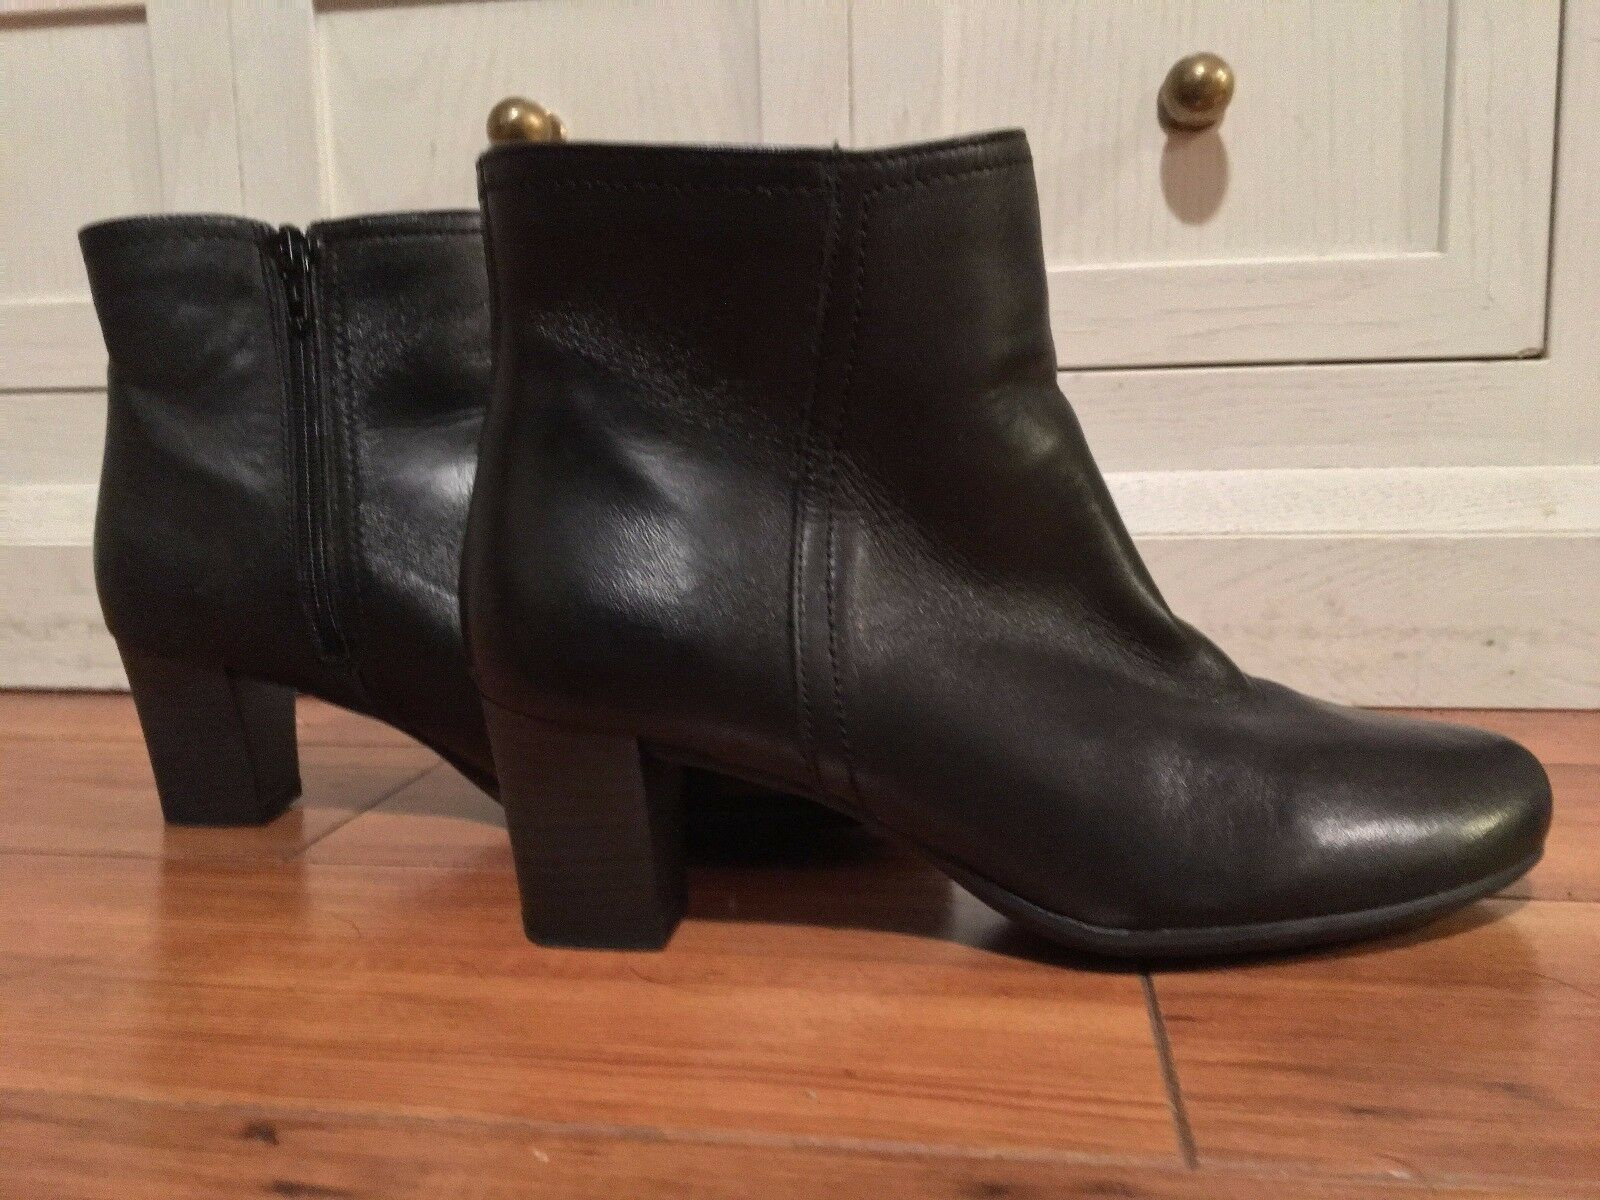 Frau - Black Italian Leather Boots size 37 (only worn once around house)